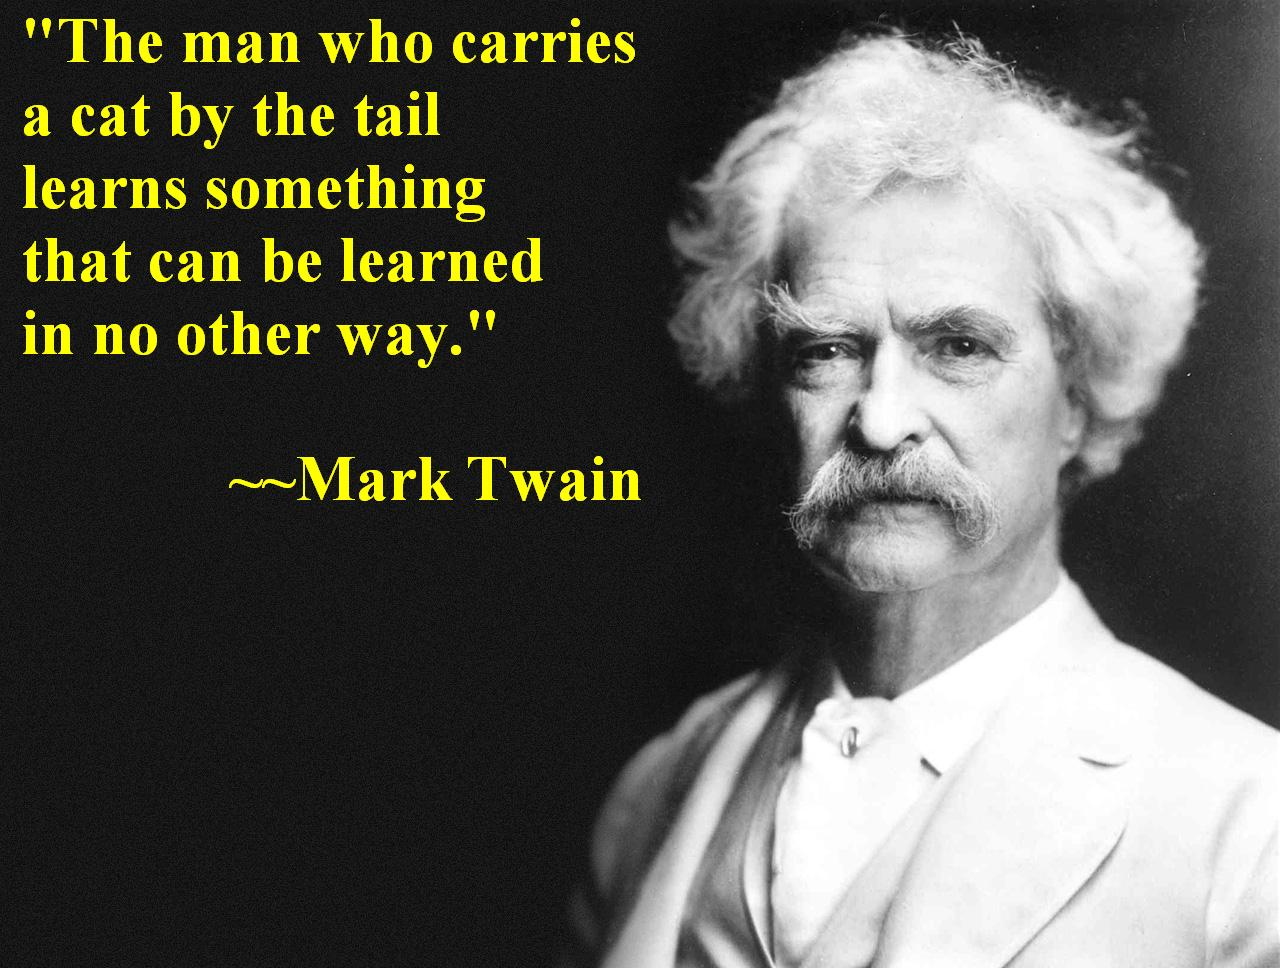 Mark Twain, On Education and Cats